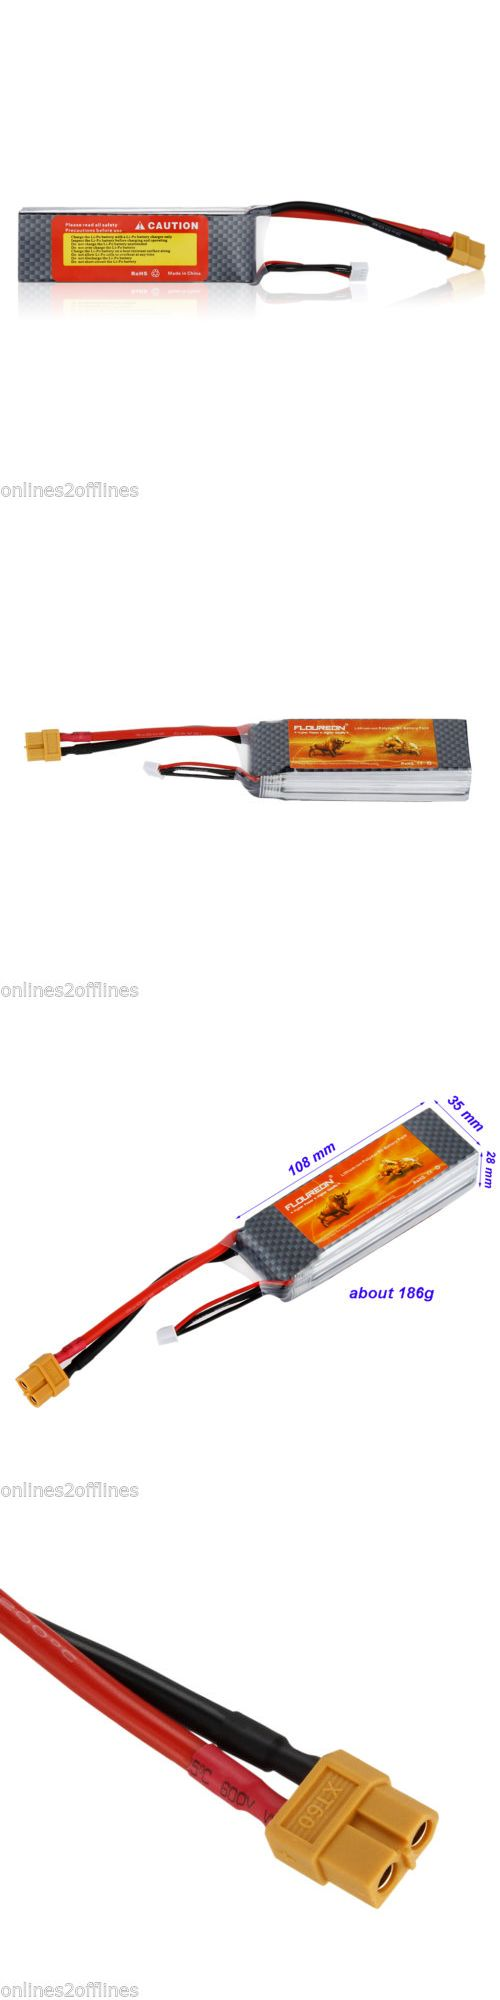 Telephone Batteries: 2Pcs Rechargeable 11.1V 2200Mah Lipo Battery Xt60 25C For Rc Helicopter Airplane BUY IT NOW ONLY: $35.99